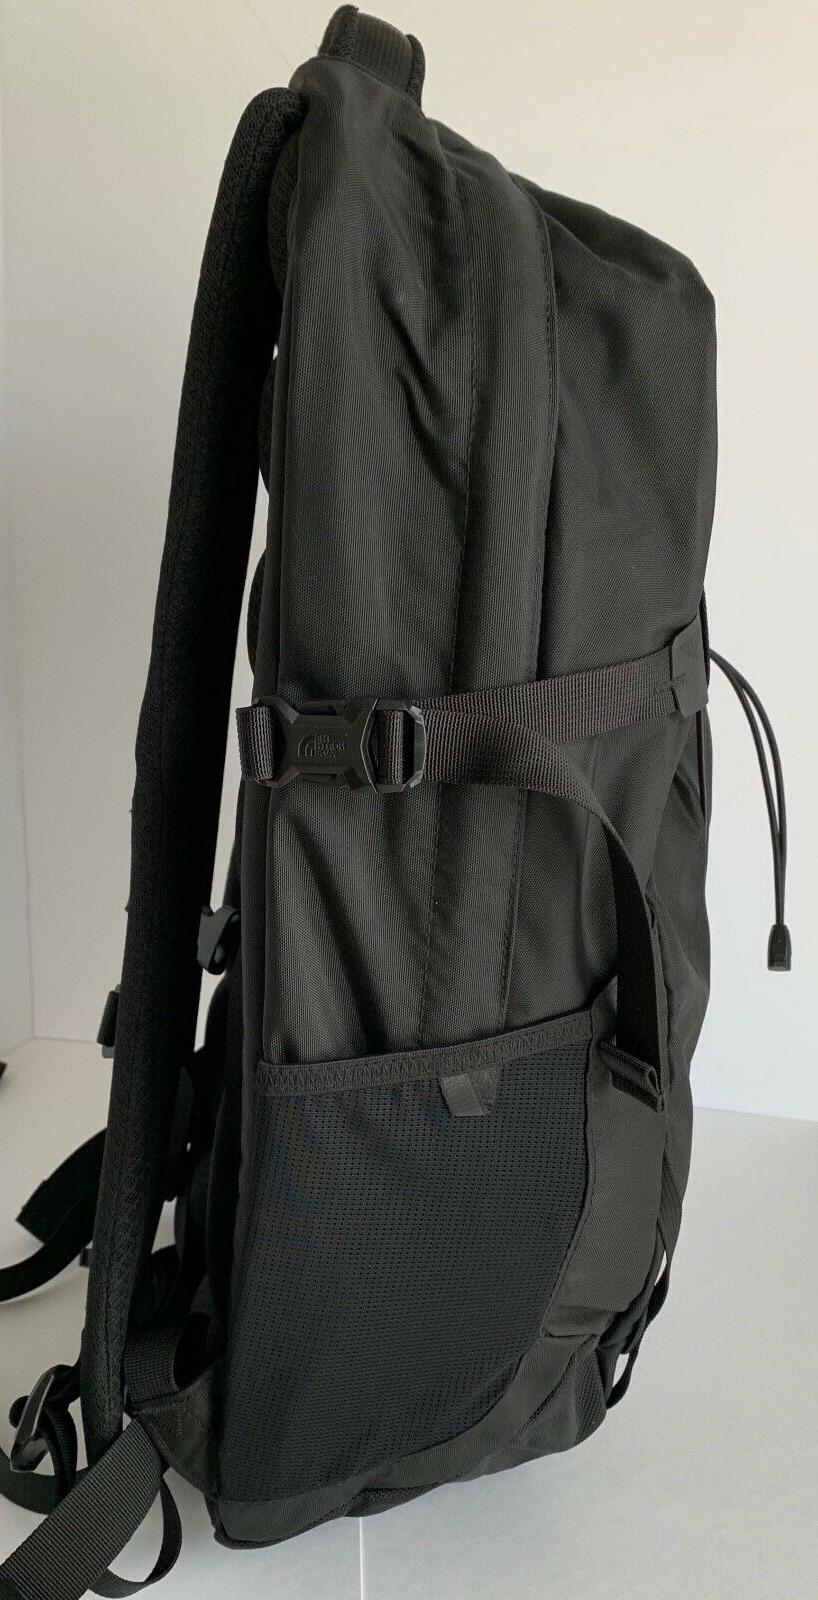 The Face Solid State Black Laptop Backpack, TNF Resistant